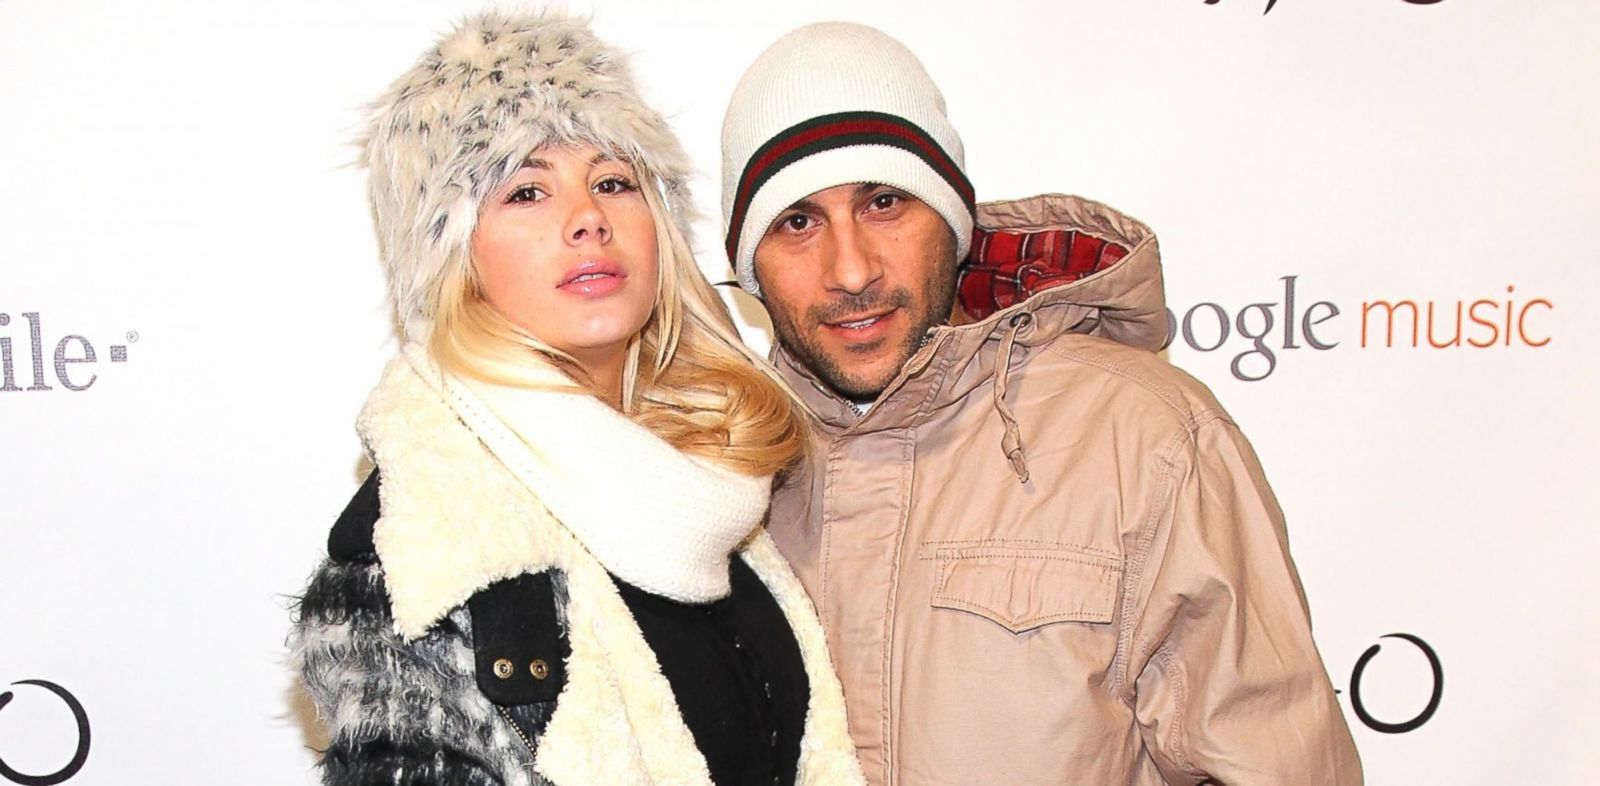 PHOTO: Actress Shayne Lamas, left and blogger Nik Richie attend the T-Mobile Presents Google Music at TAO, an exclusive four-night concert series, Jan. 23, 2012 in Park City, Utah.